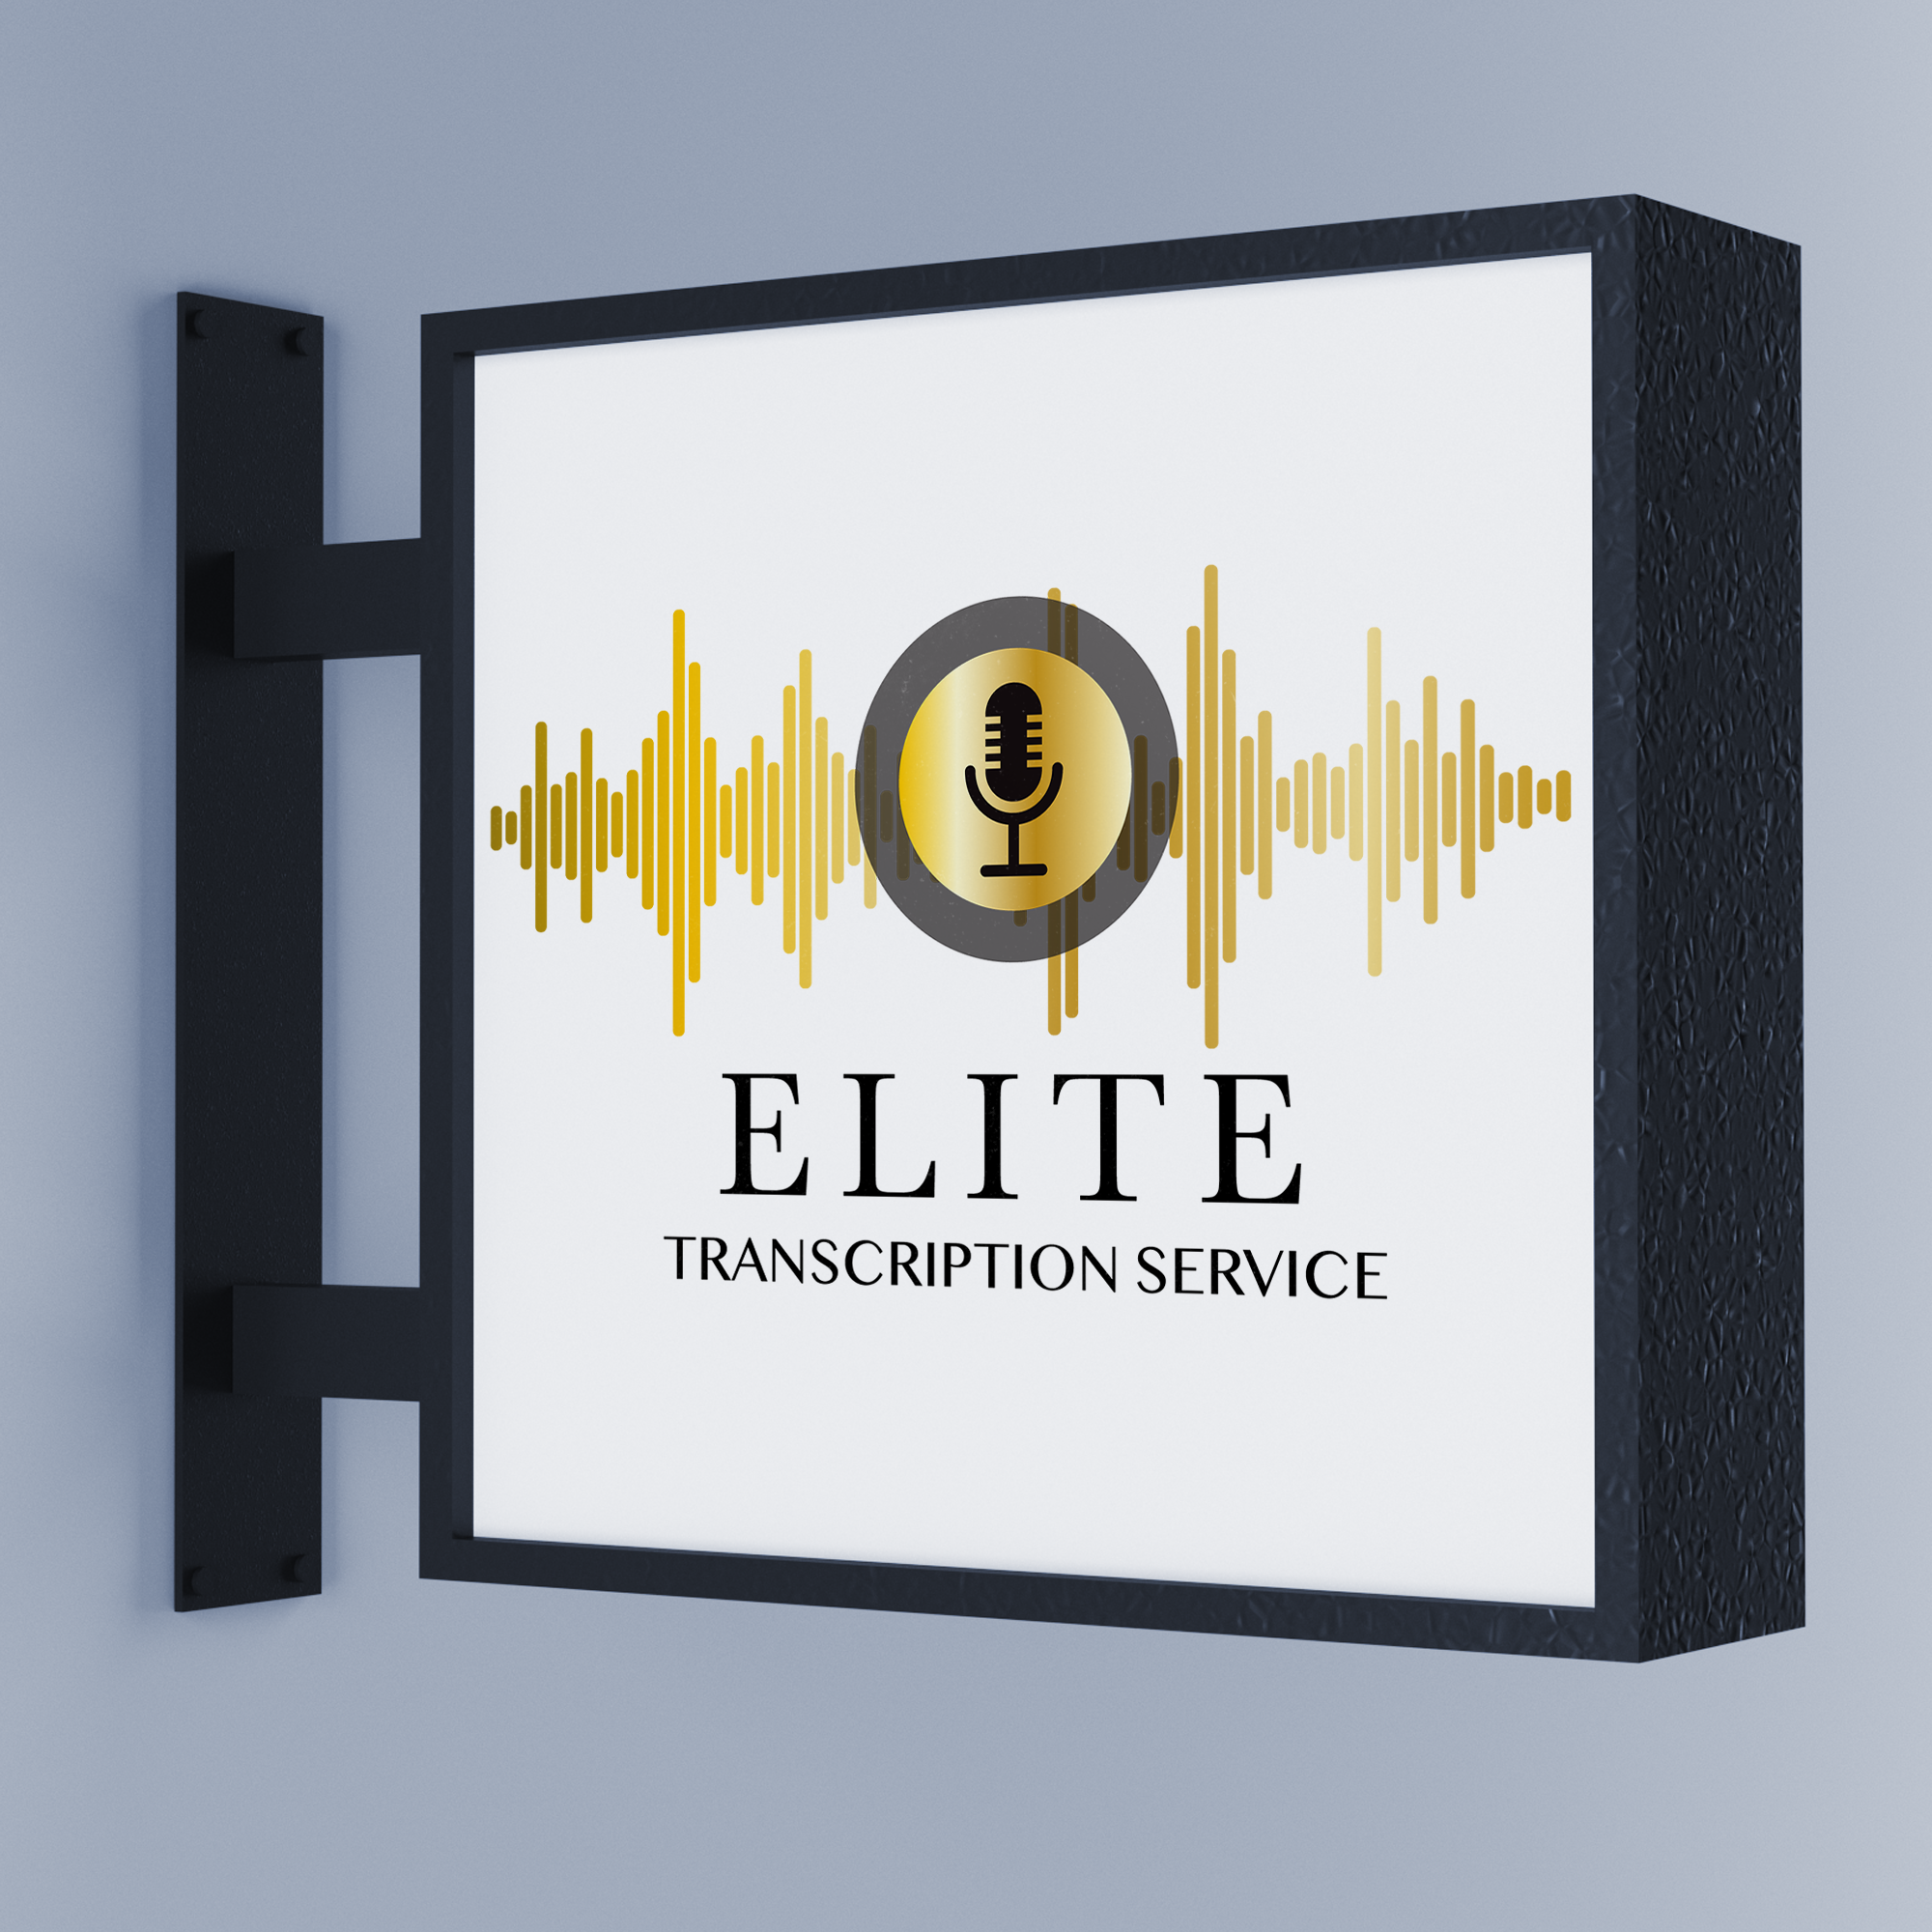 Elite Transcription Service